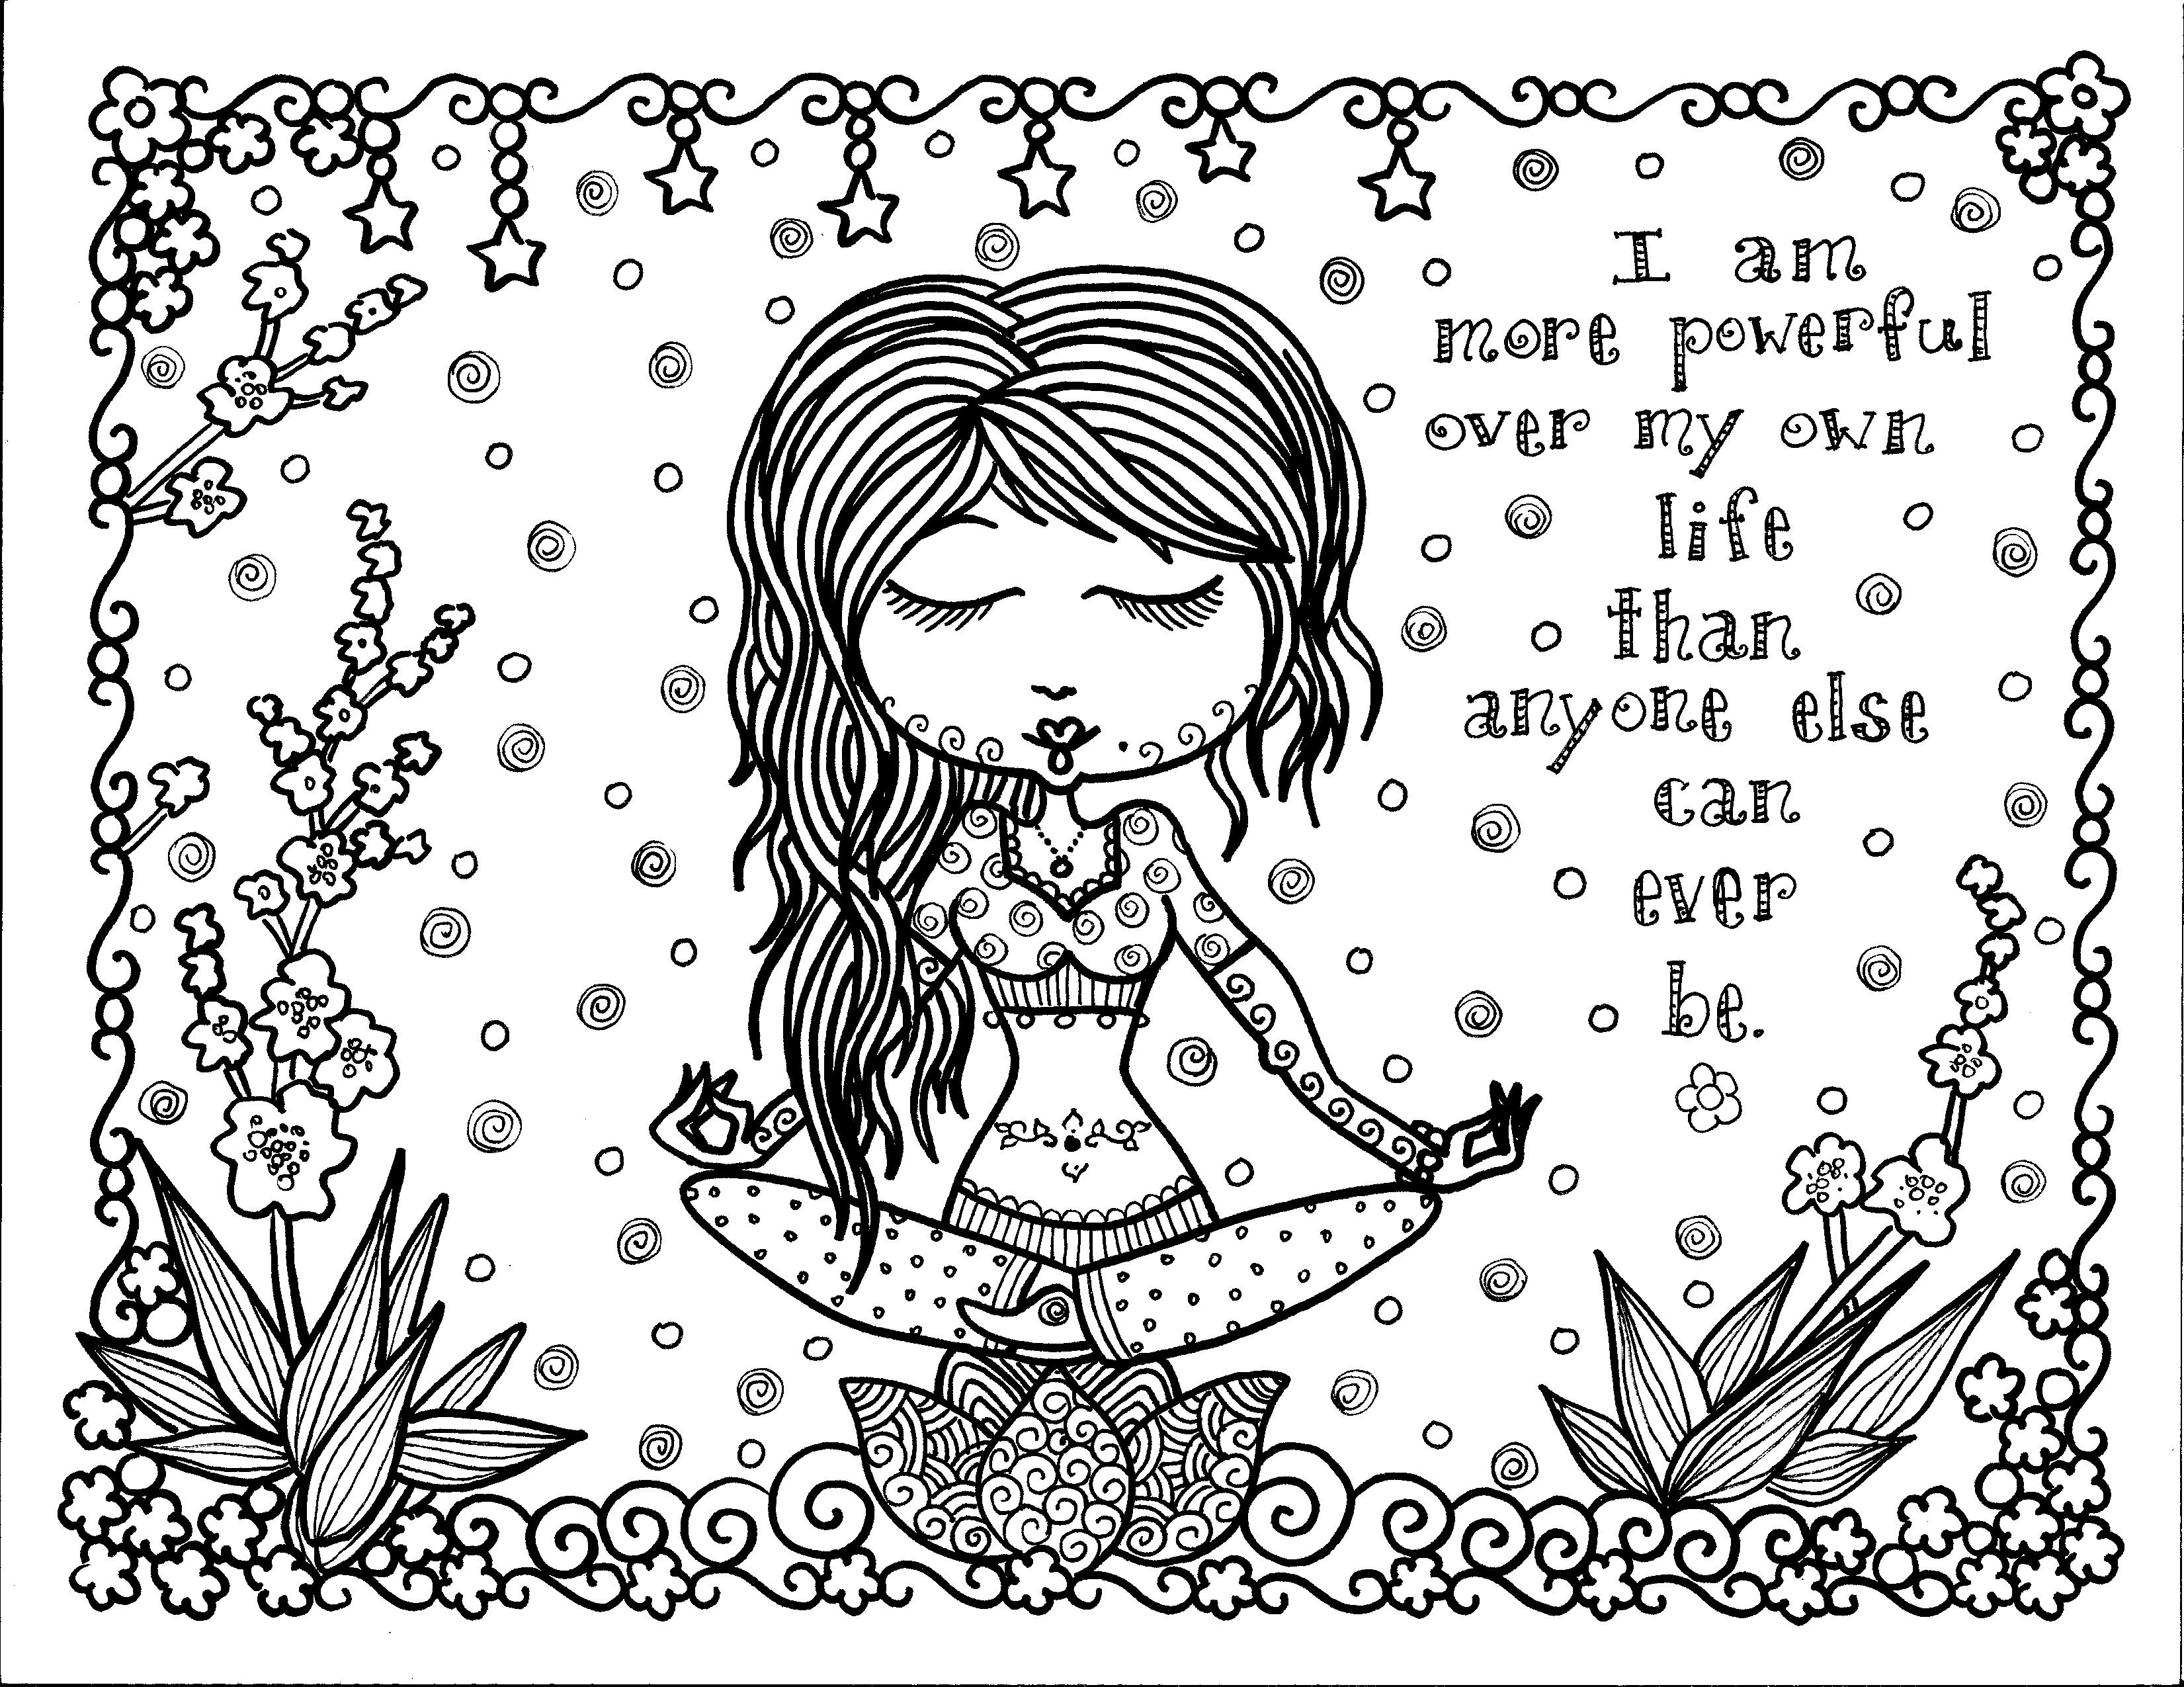 Positive Thought Zen And Anti Stress Coloring Pages For Adults